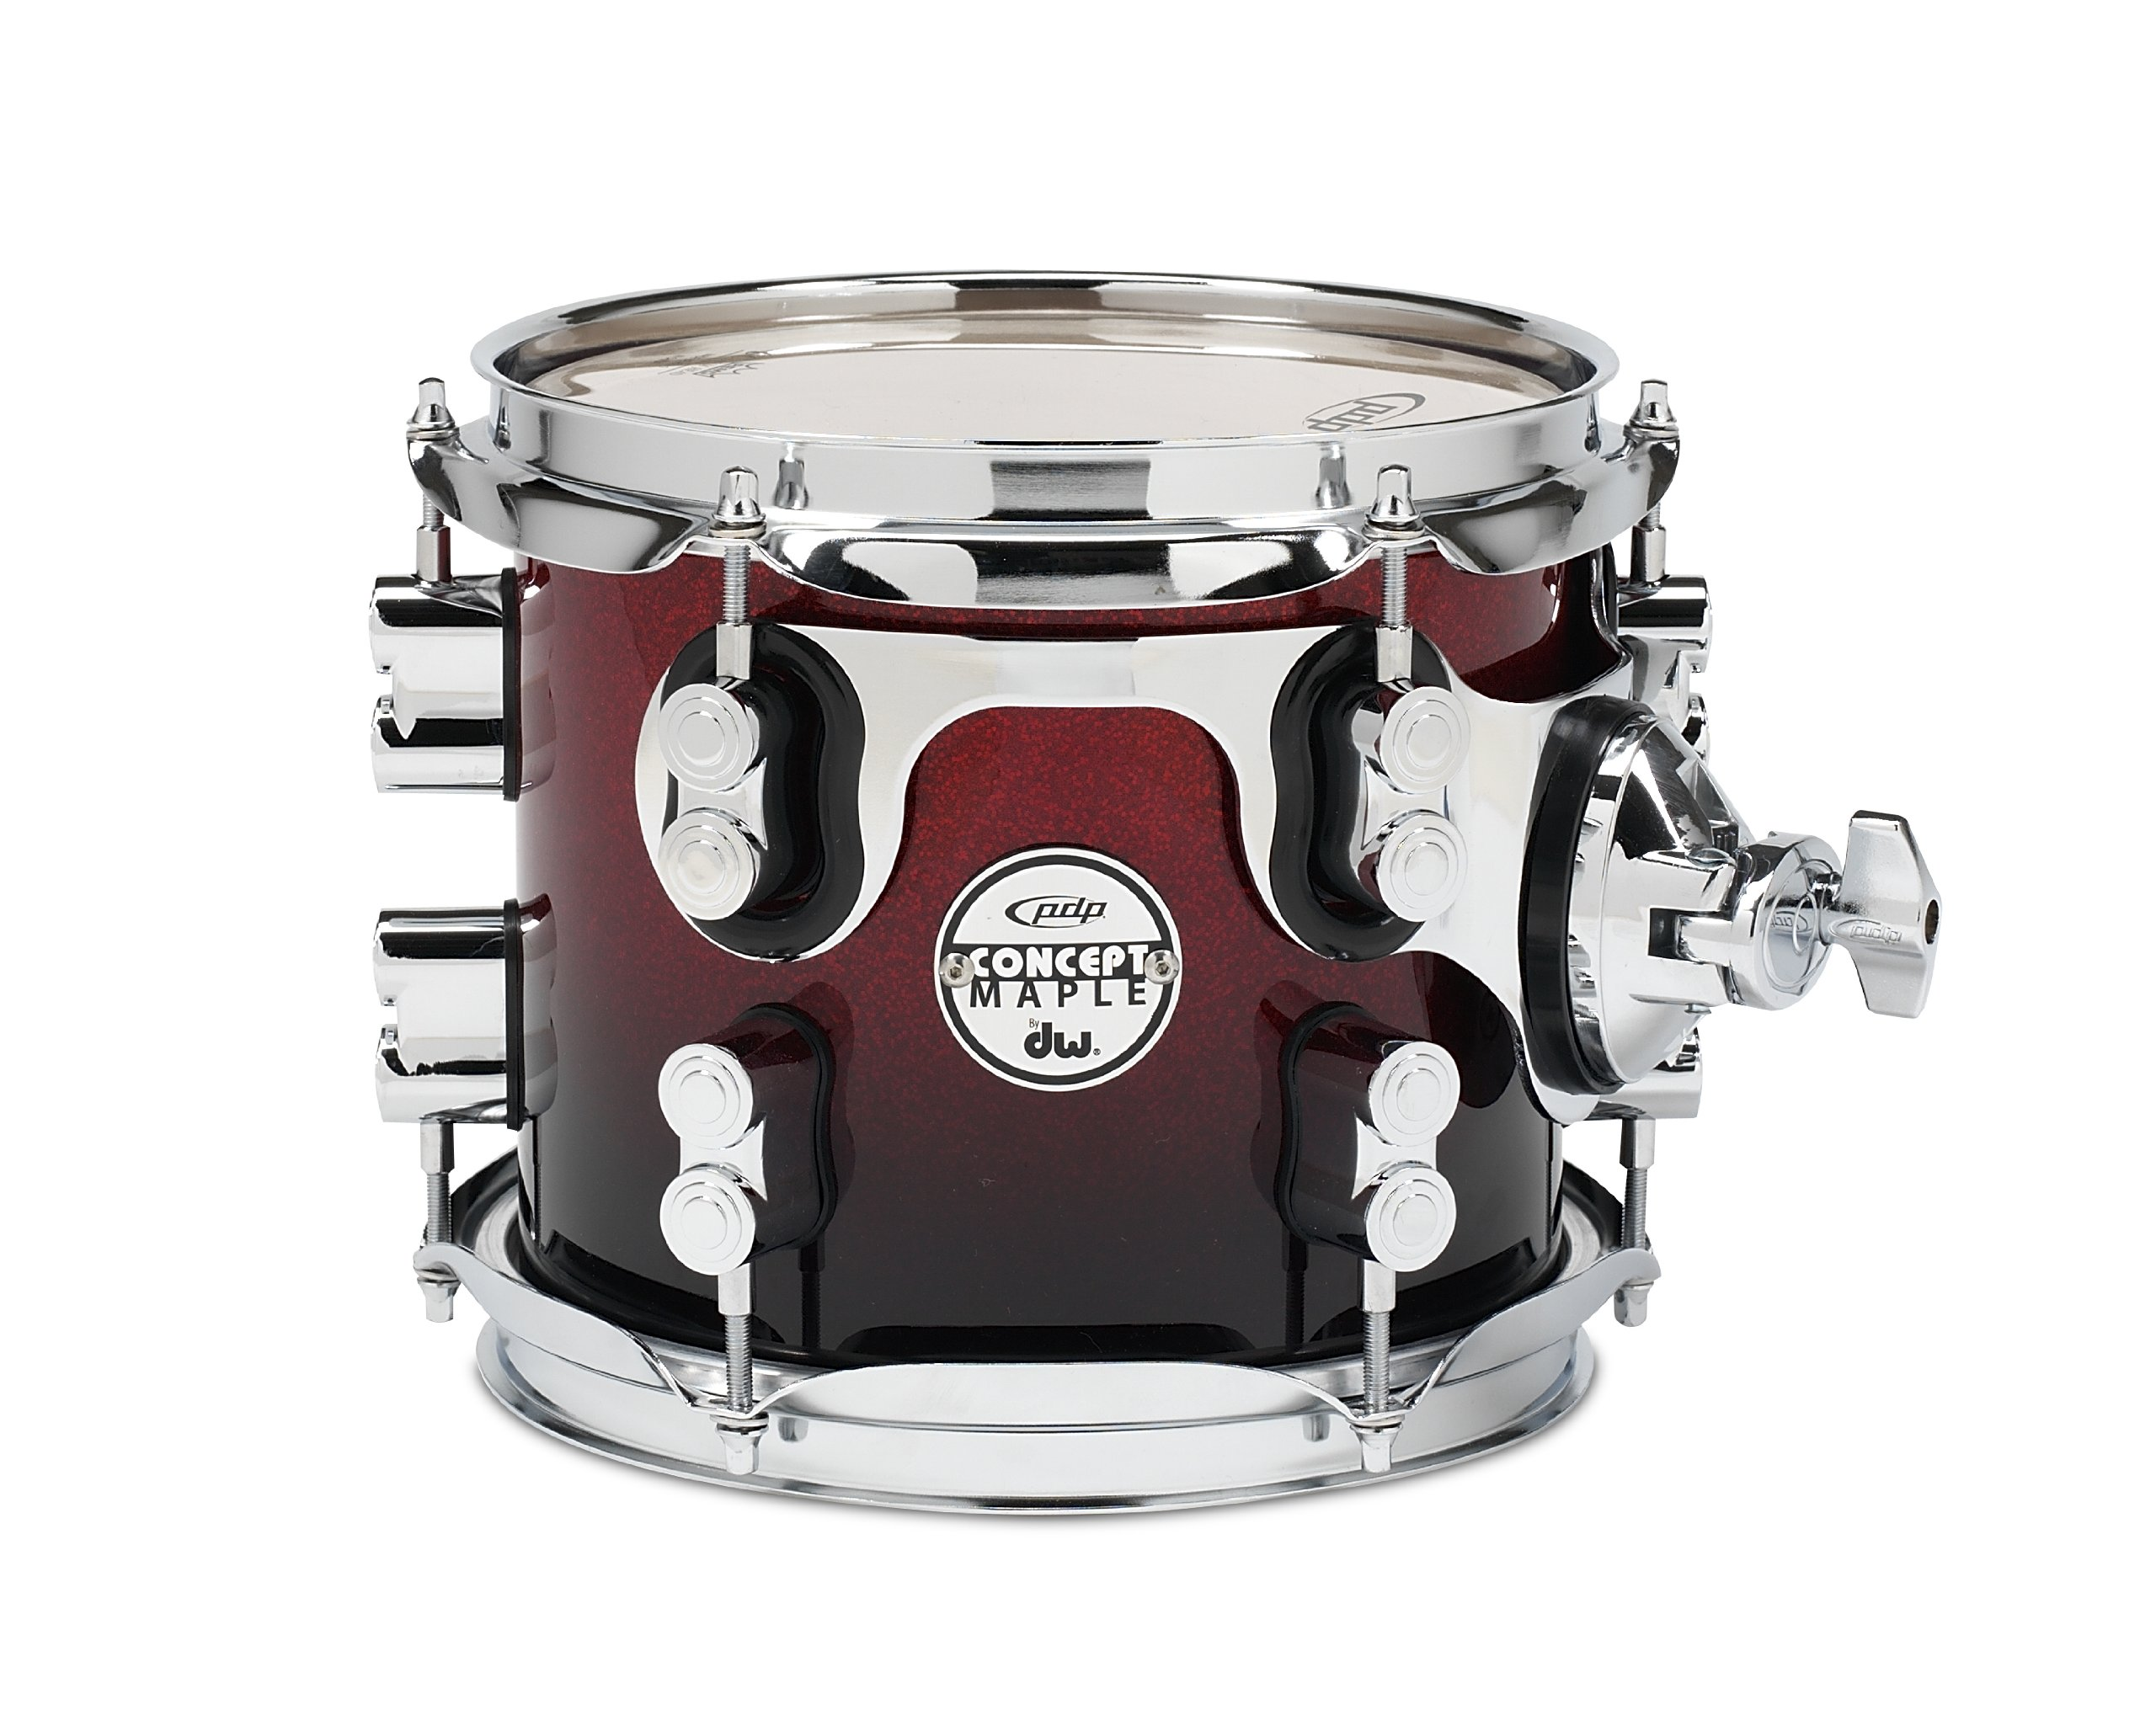 Pacific Drums PDCM0708STRB 7 x 8 Inches Tom with Chrome Hardware - Red to Black Fade